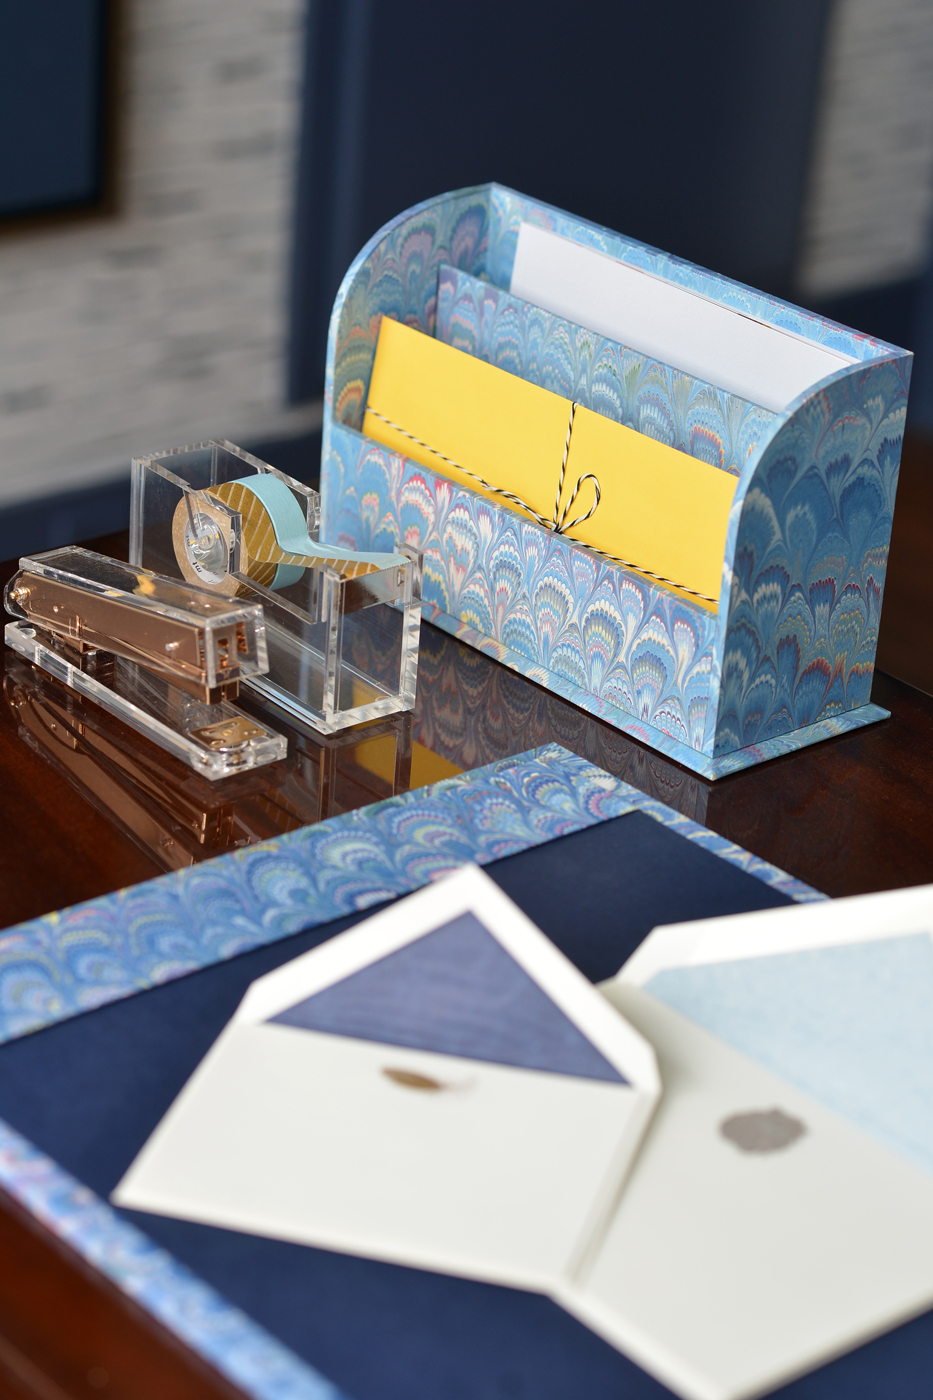 Decorating with acrylic lucite desk accessories and blue marbled paper in a home office   Savage Interior Design